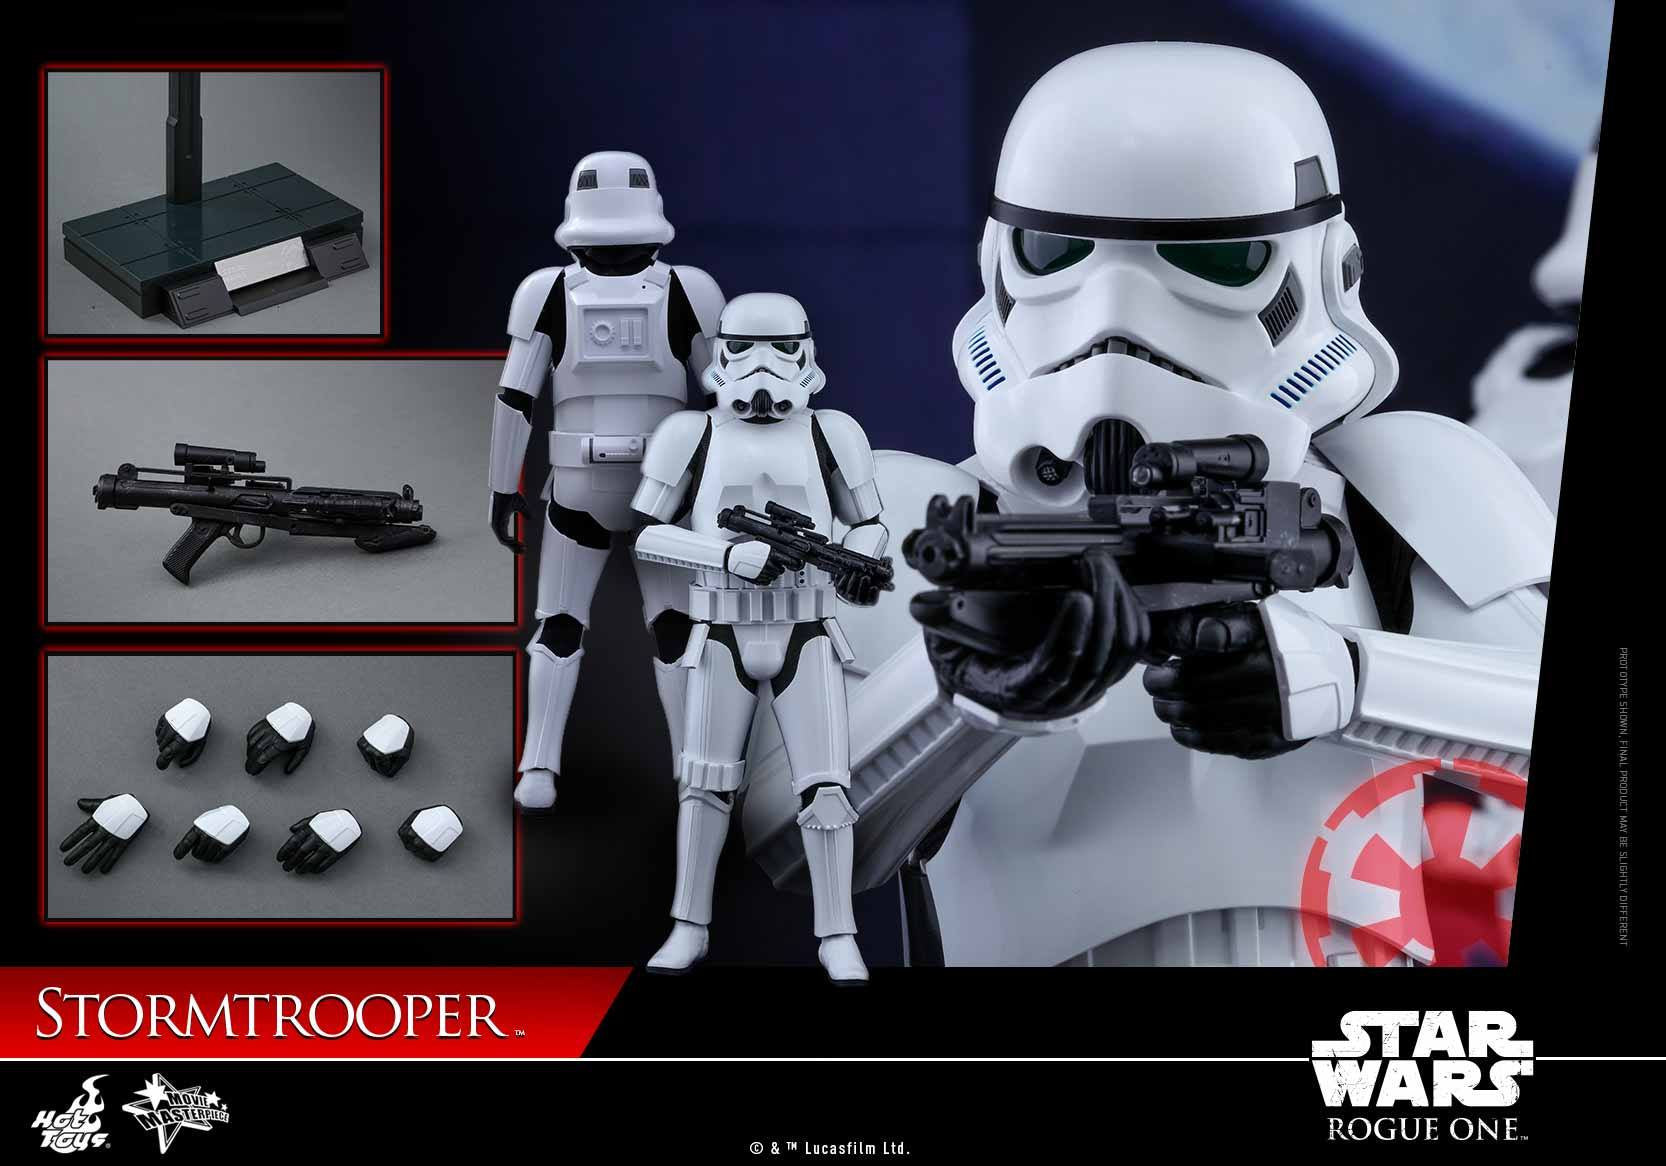 Hot Toys - MMS393 - Rogue One: A Star Wars Story - Stormtrooper - Marvelous Toys - 11